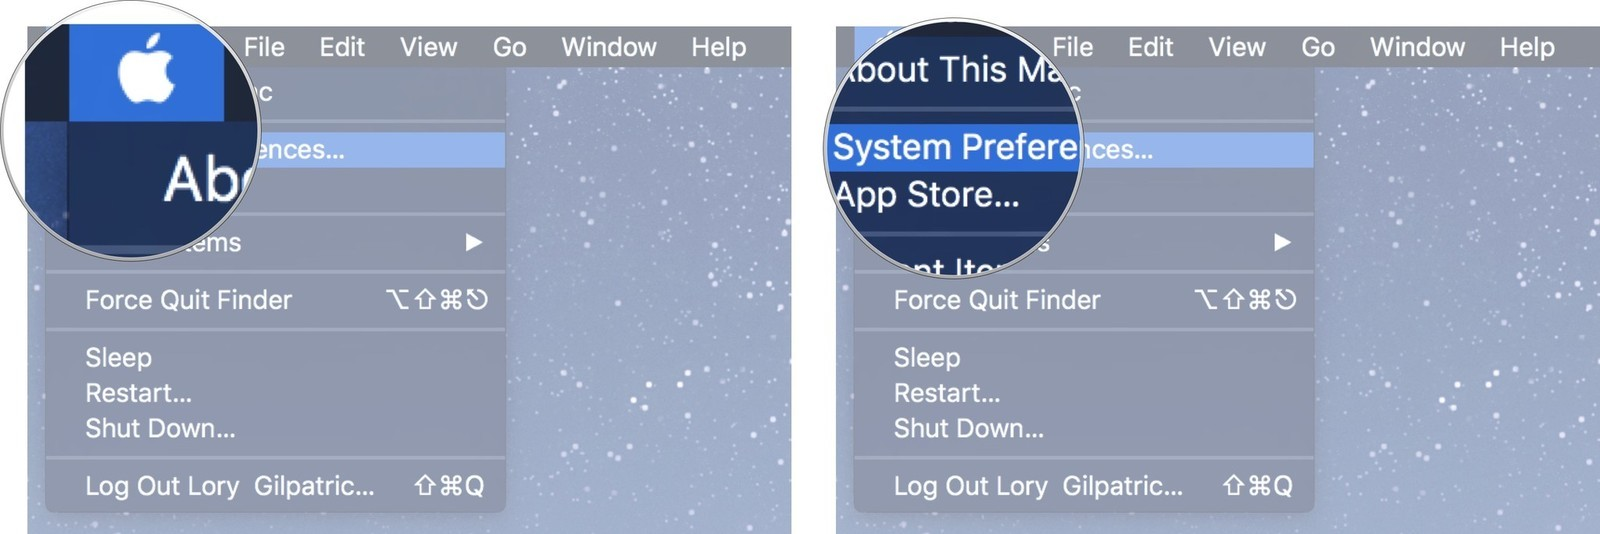 Click on the Apple menu icon, then click on System Preferences